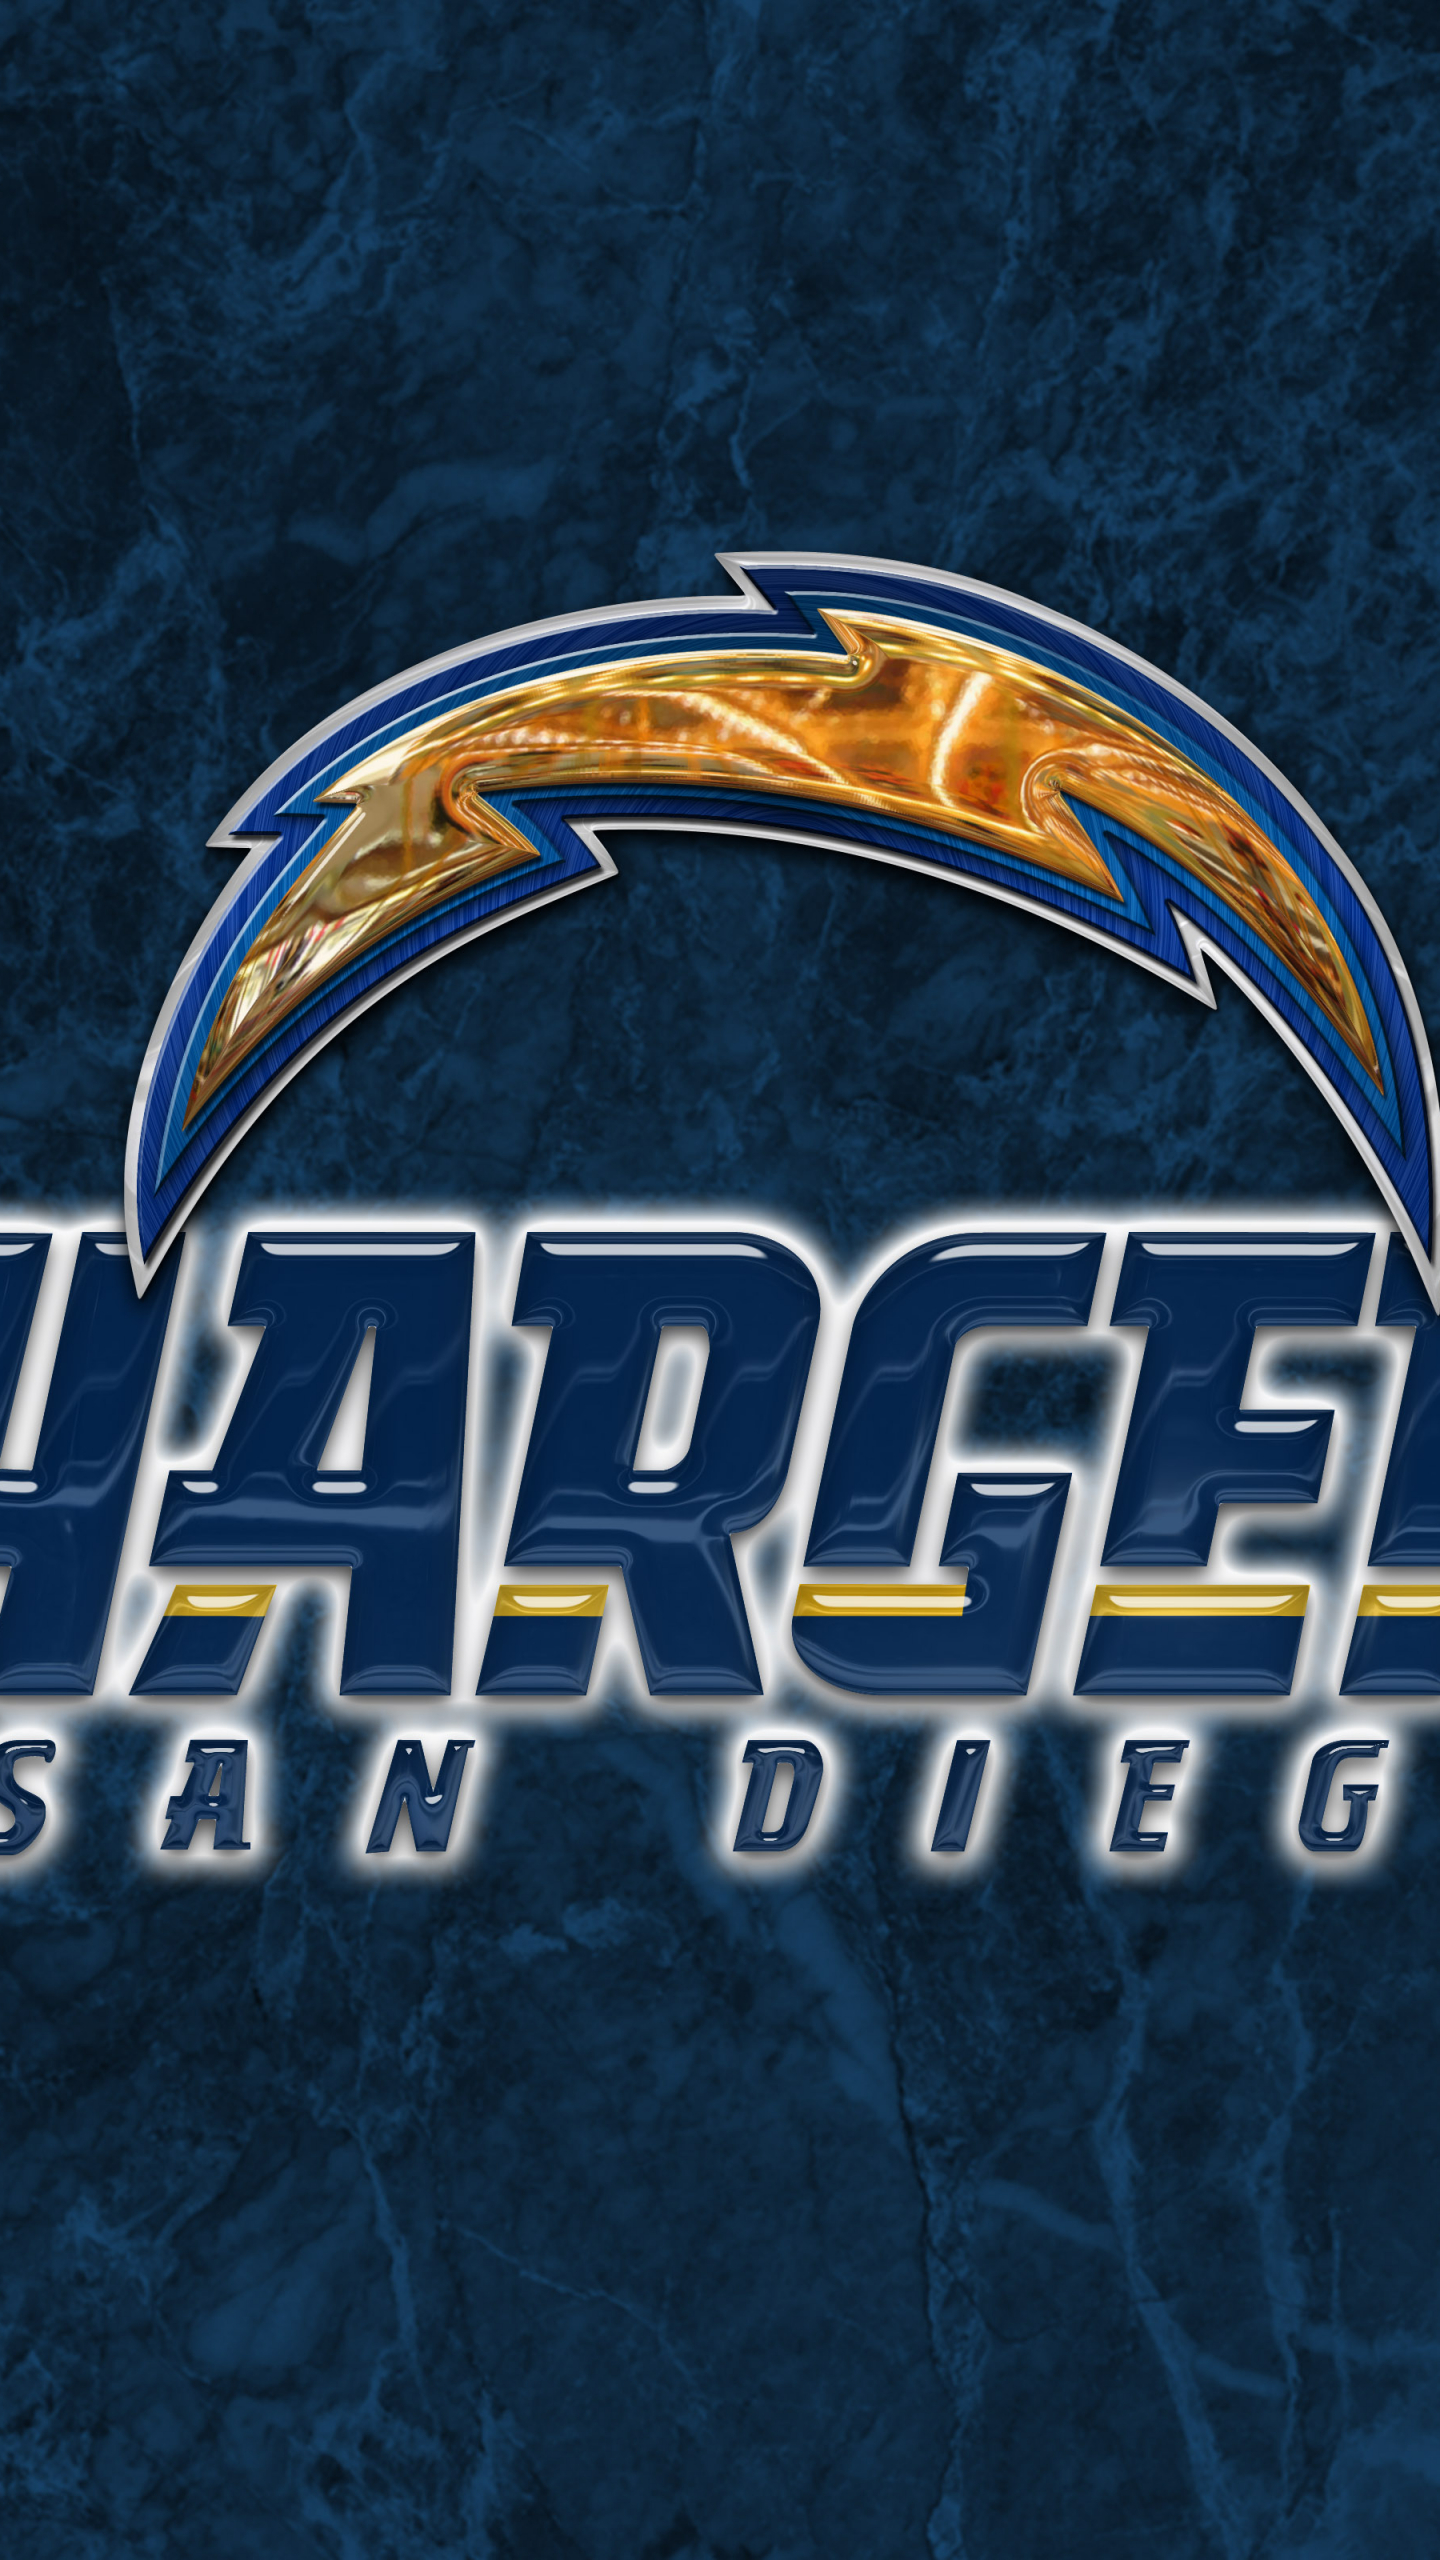 Free Download San Diego Chargers Nfl Football Team Logo Wallpapers Hd 4800x3200 For Your Desktop Mobile Tablet Explore 46 Nfl Football Hd Wallpapers Nfl Football Wallpapers Free Nfl Wallpapers